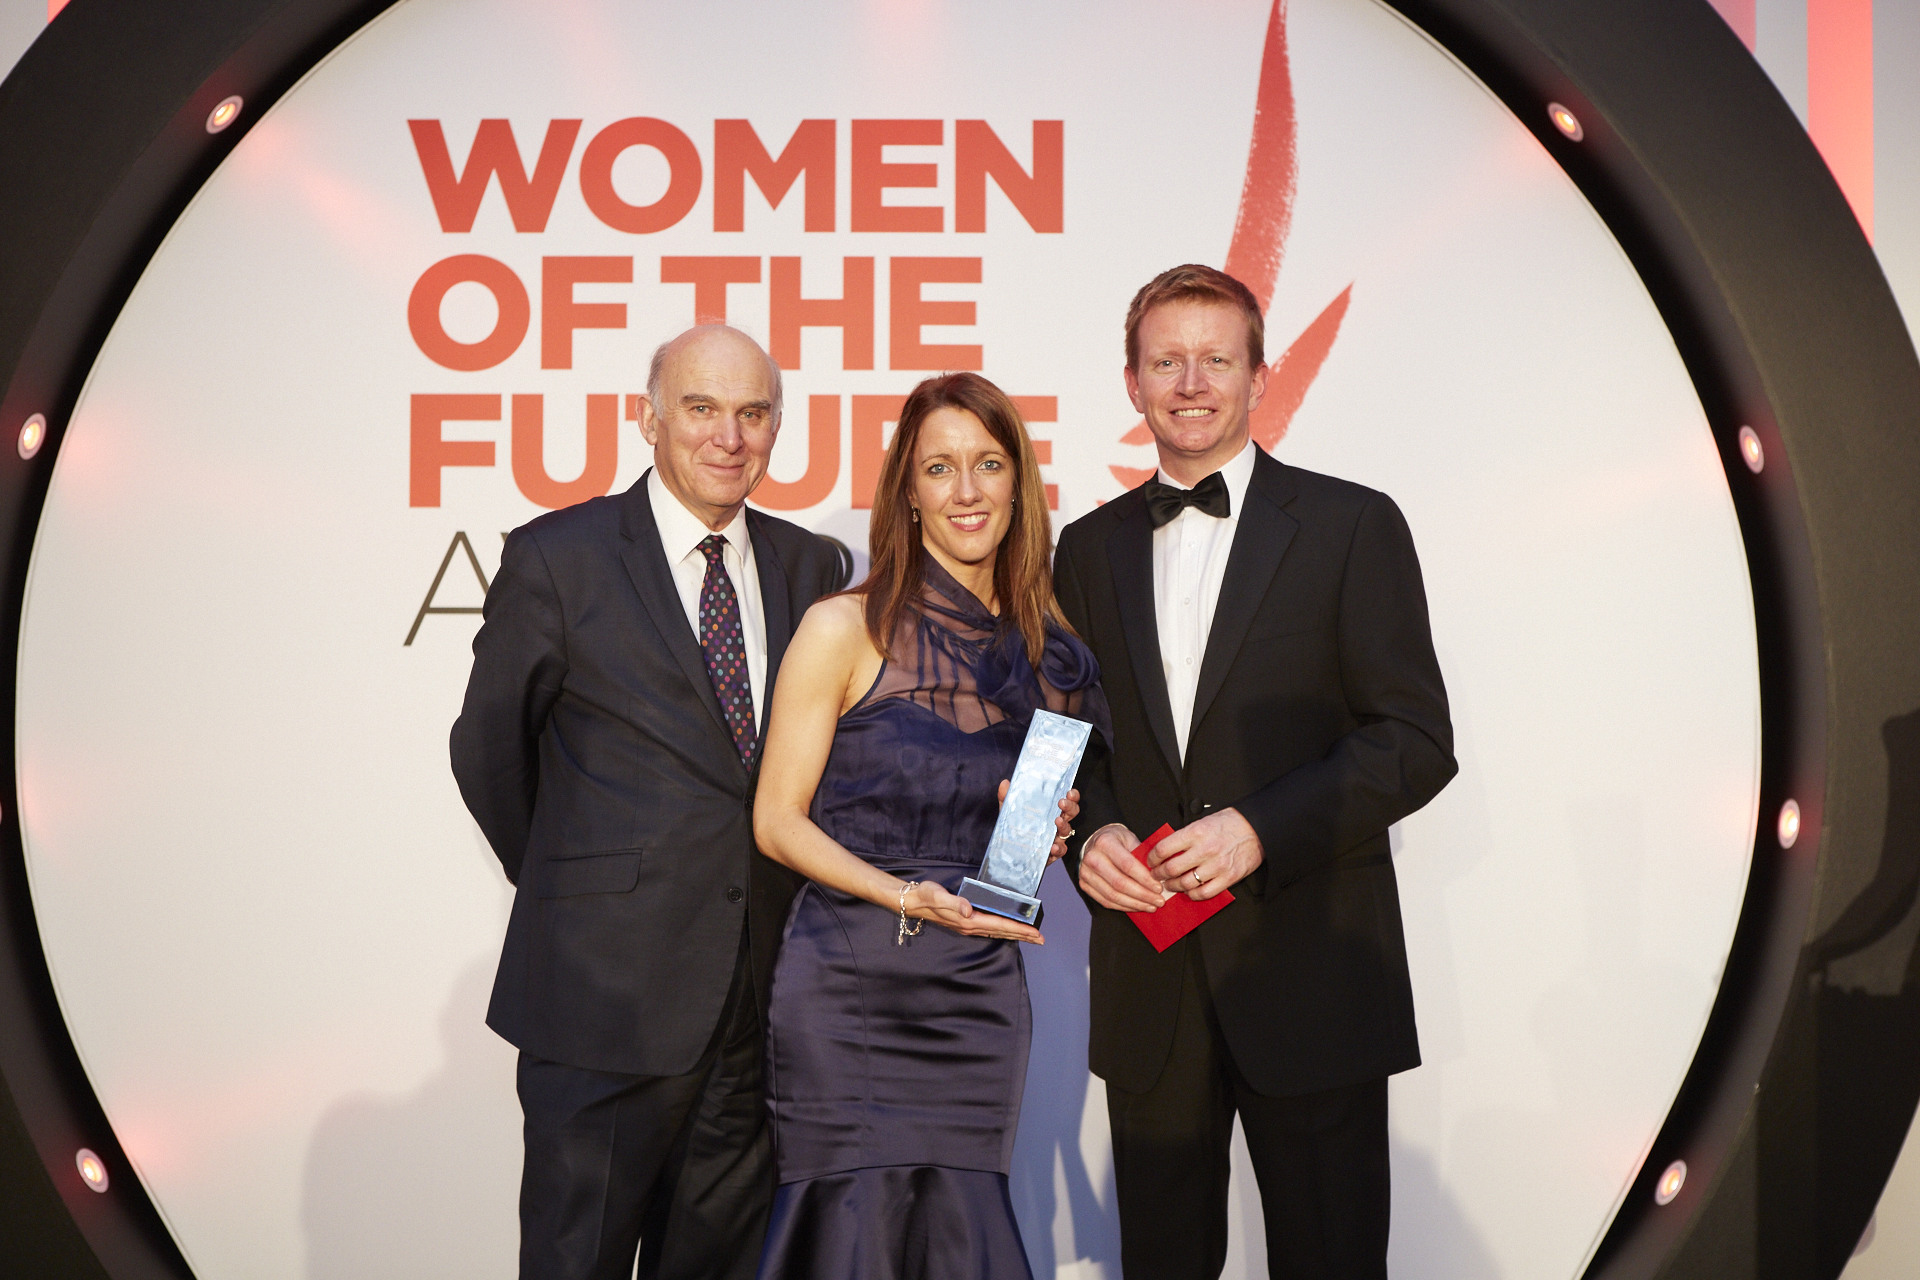 Women of the Future Awards: One week left to nominate